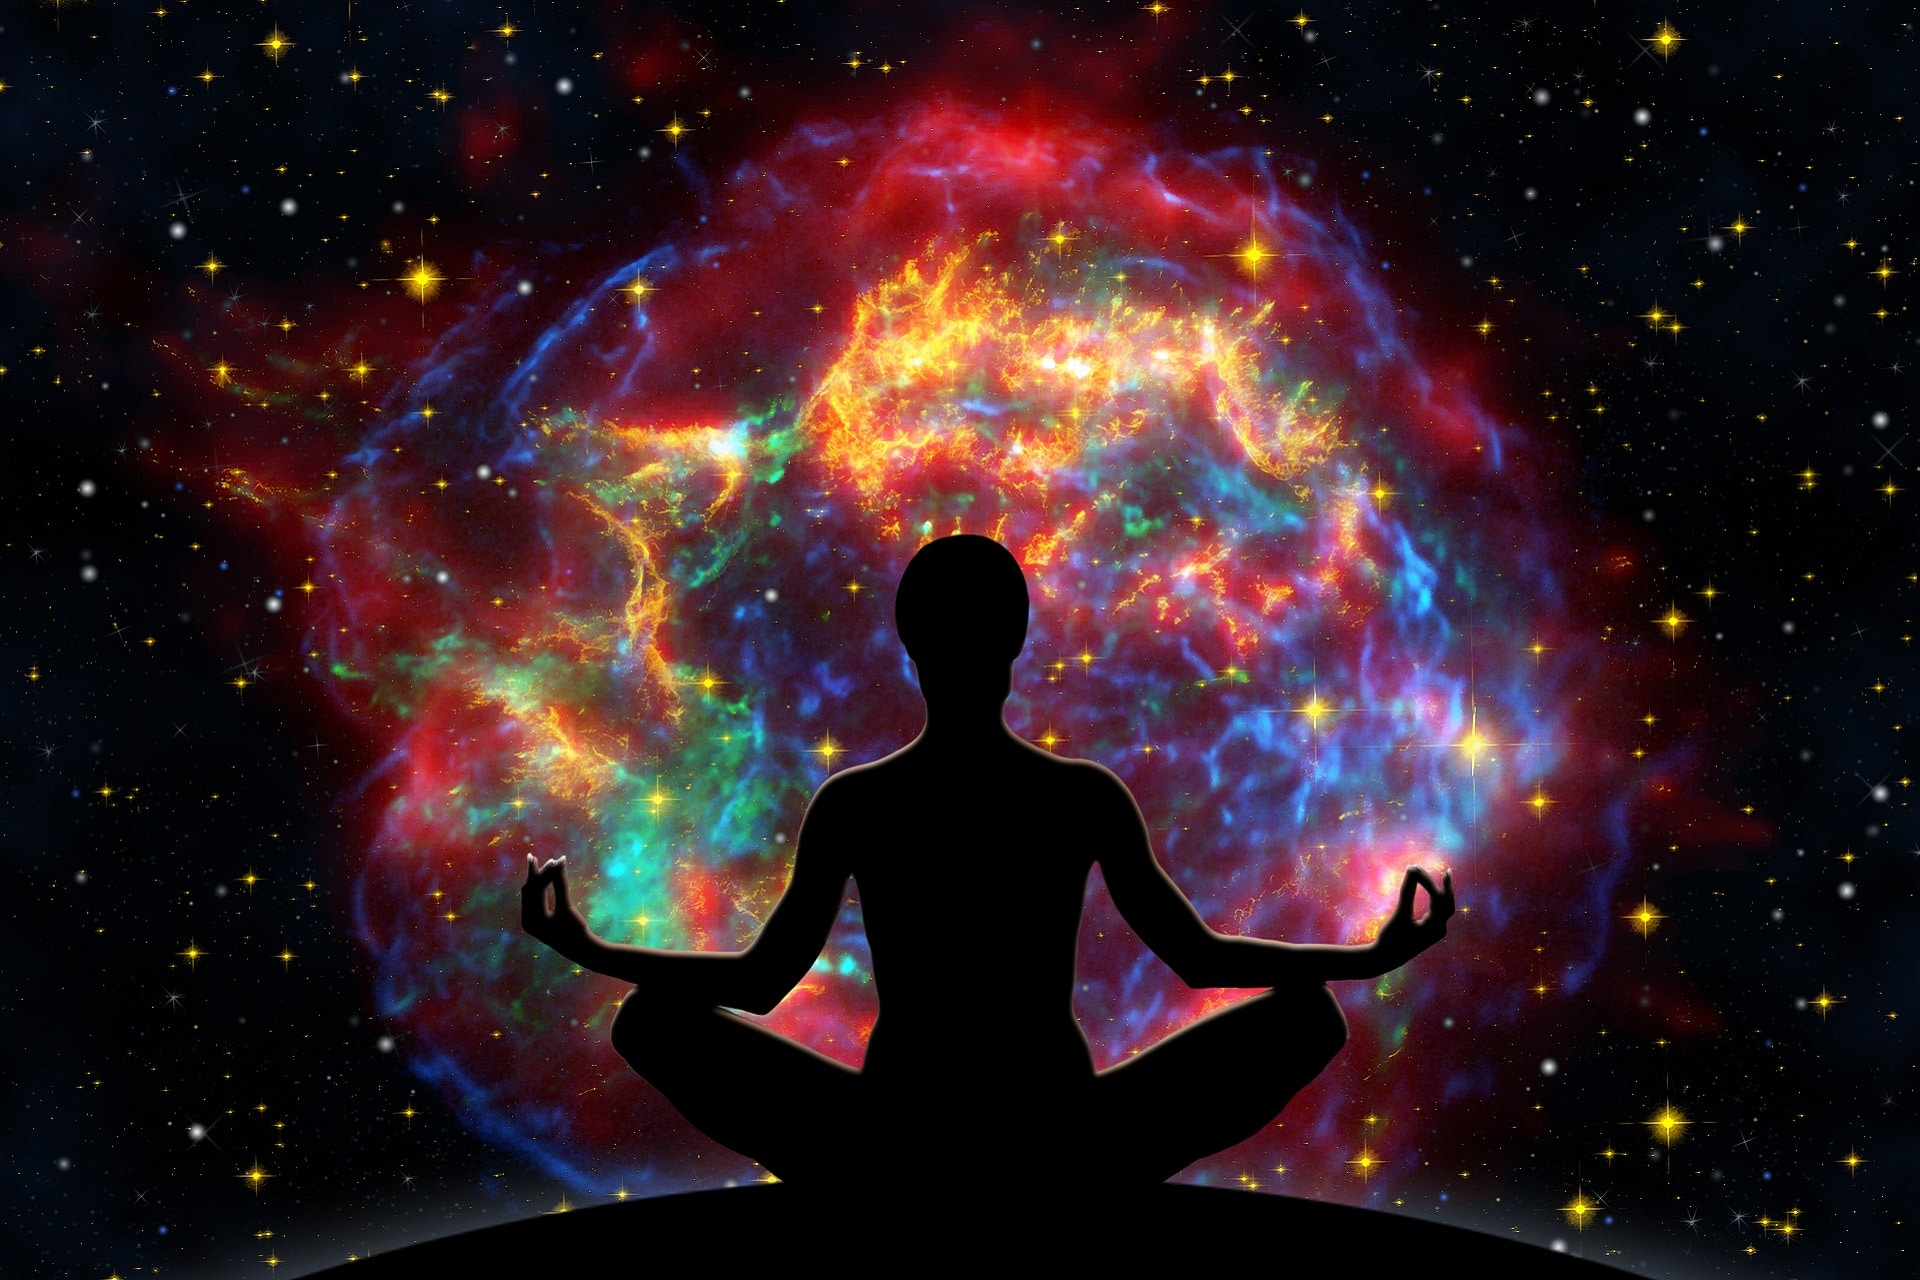 Female yoga figure against universe background with Supernova explosion.